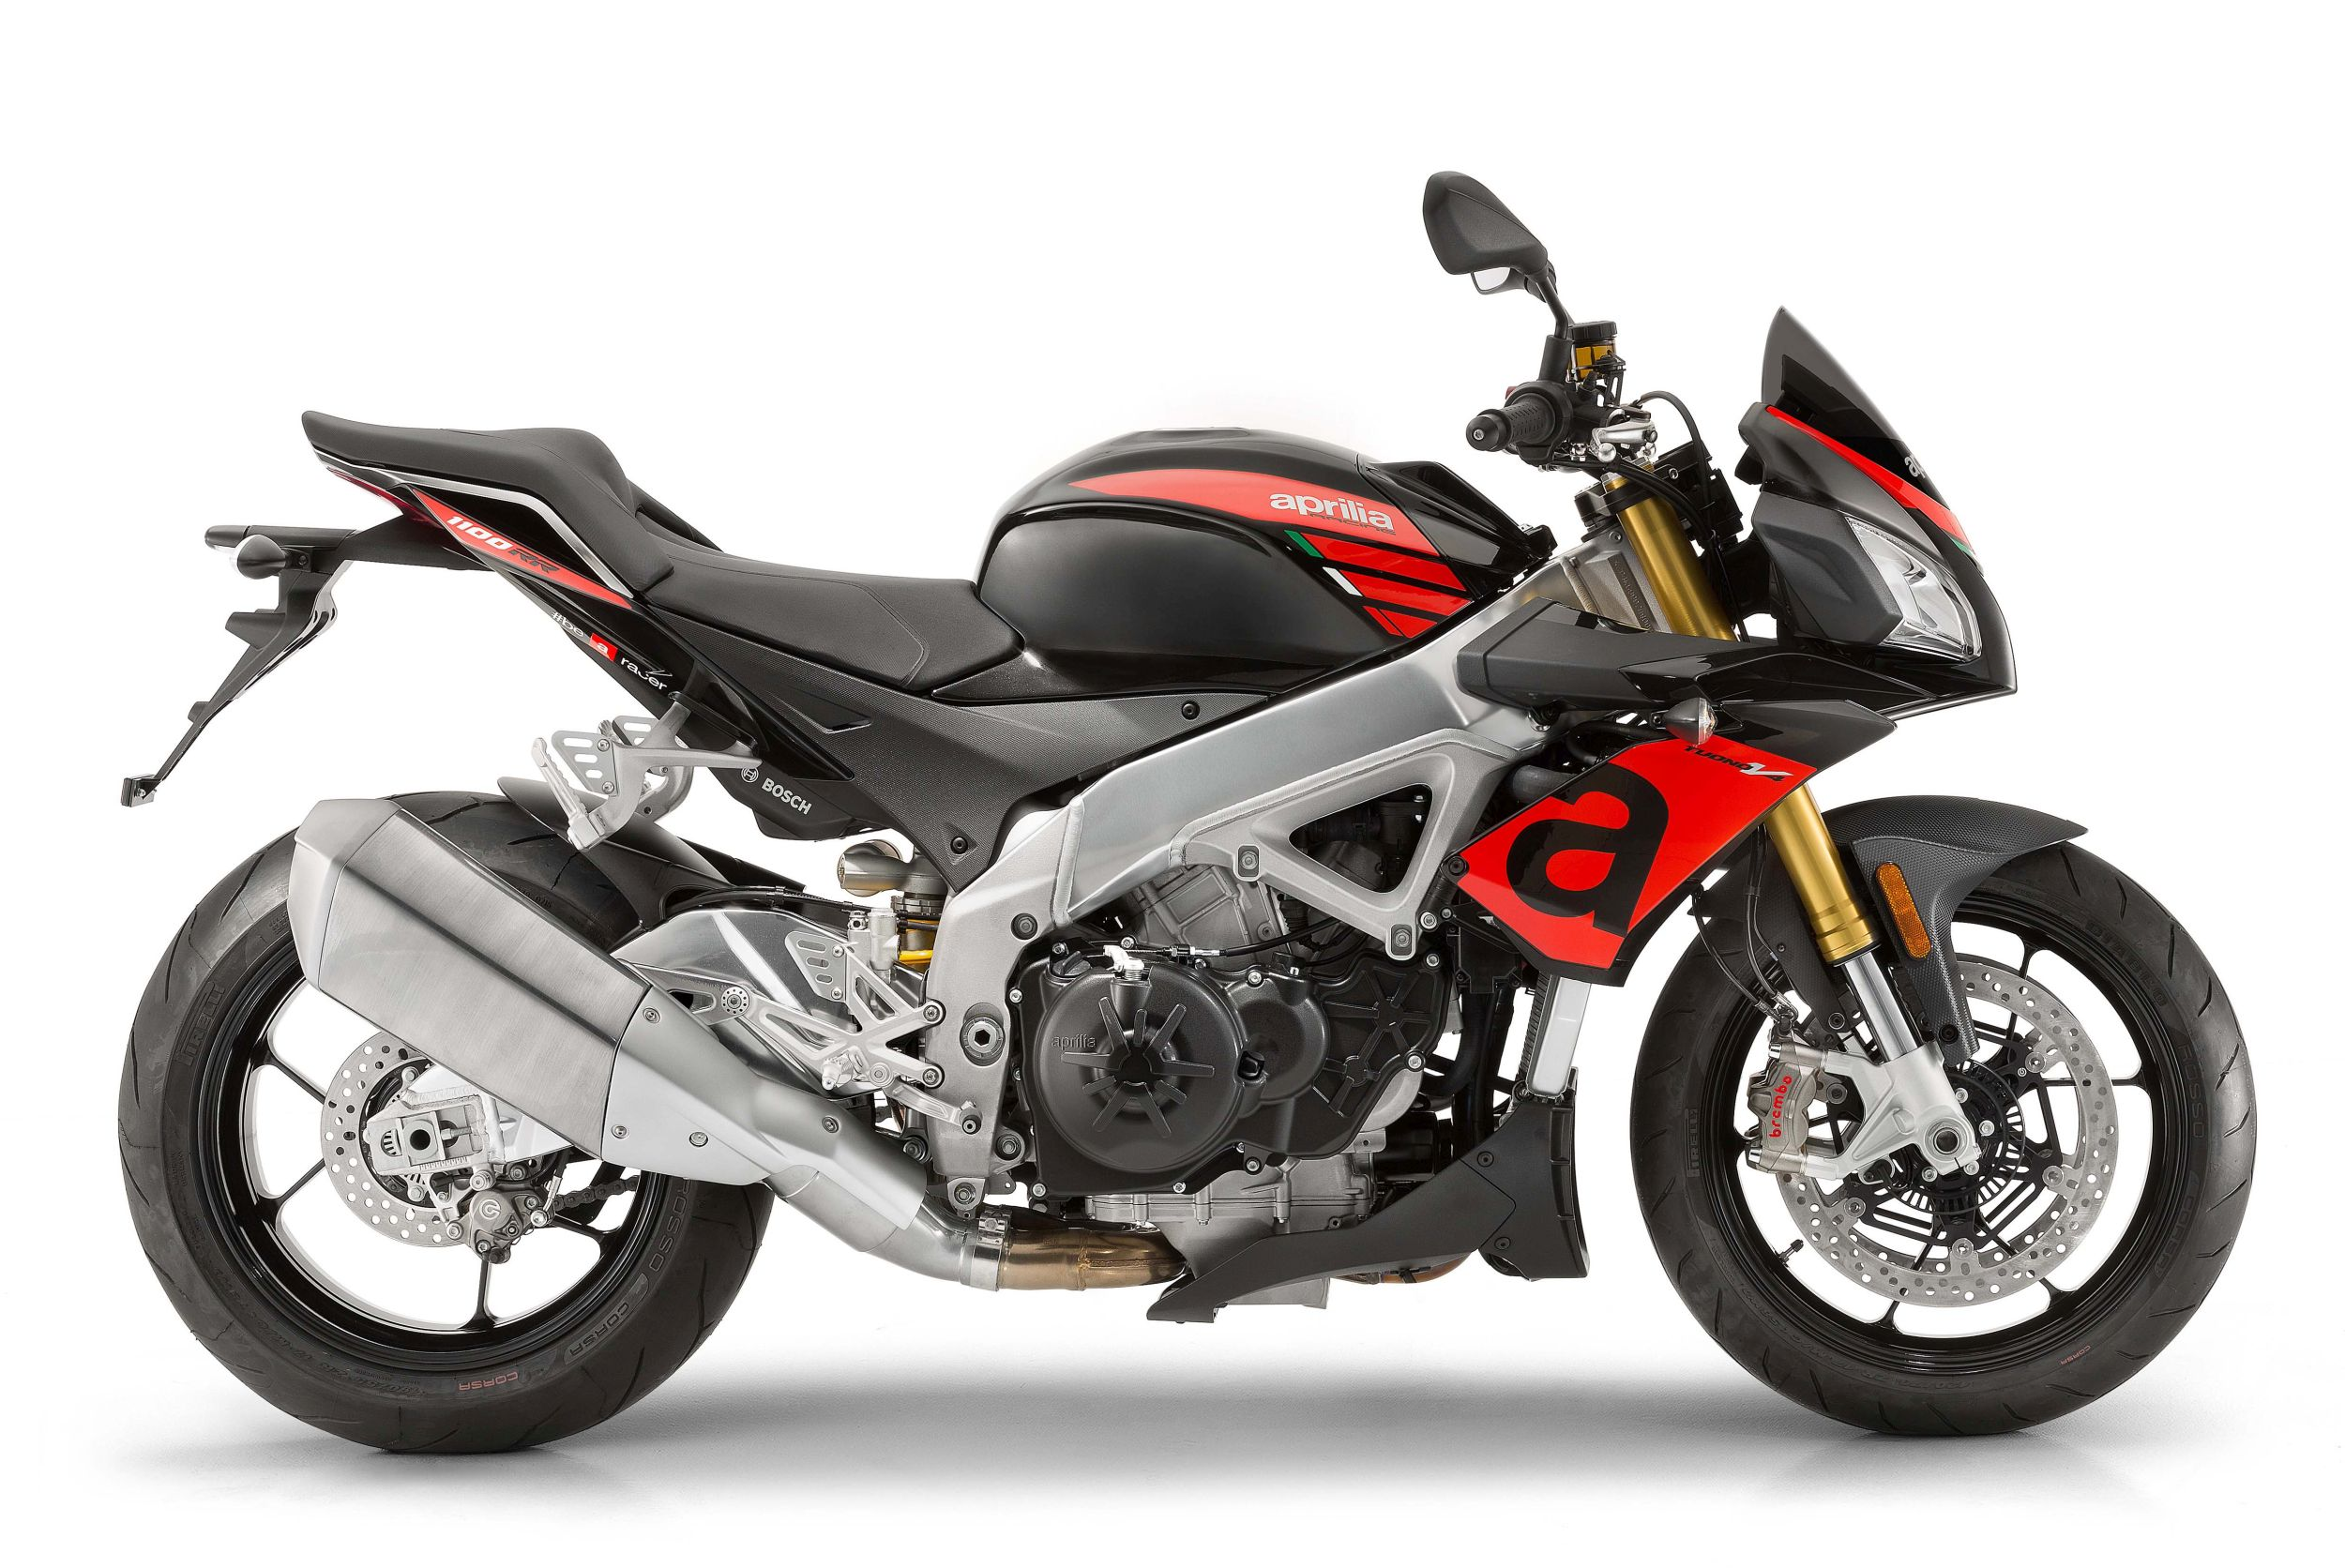 Permalink to Aprilia 750 Dorsoduro For Sale